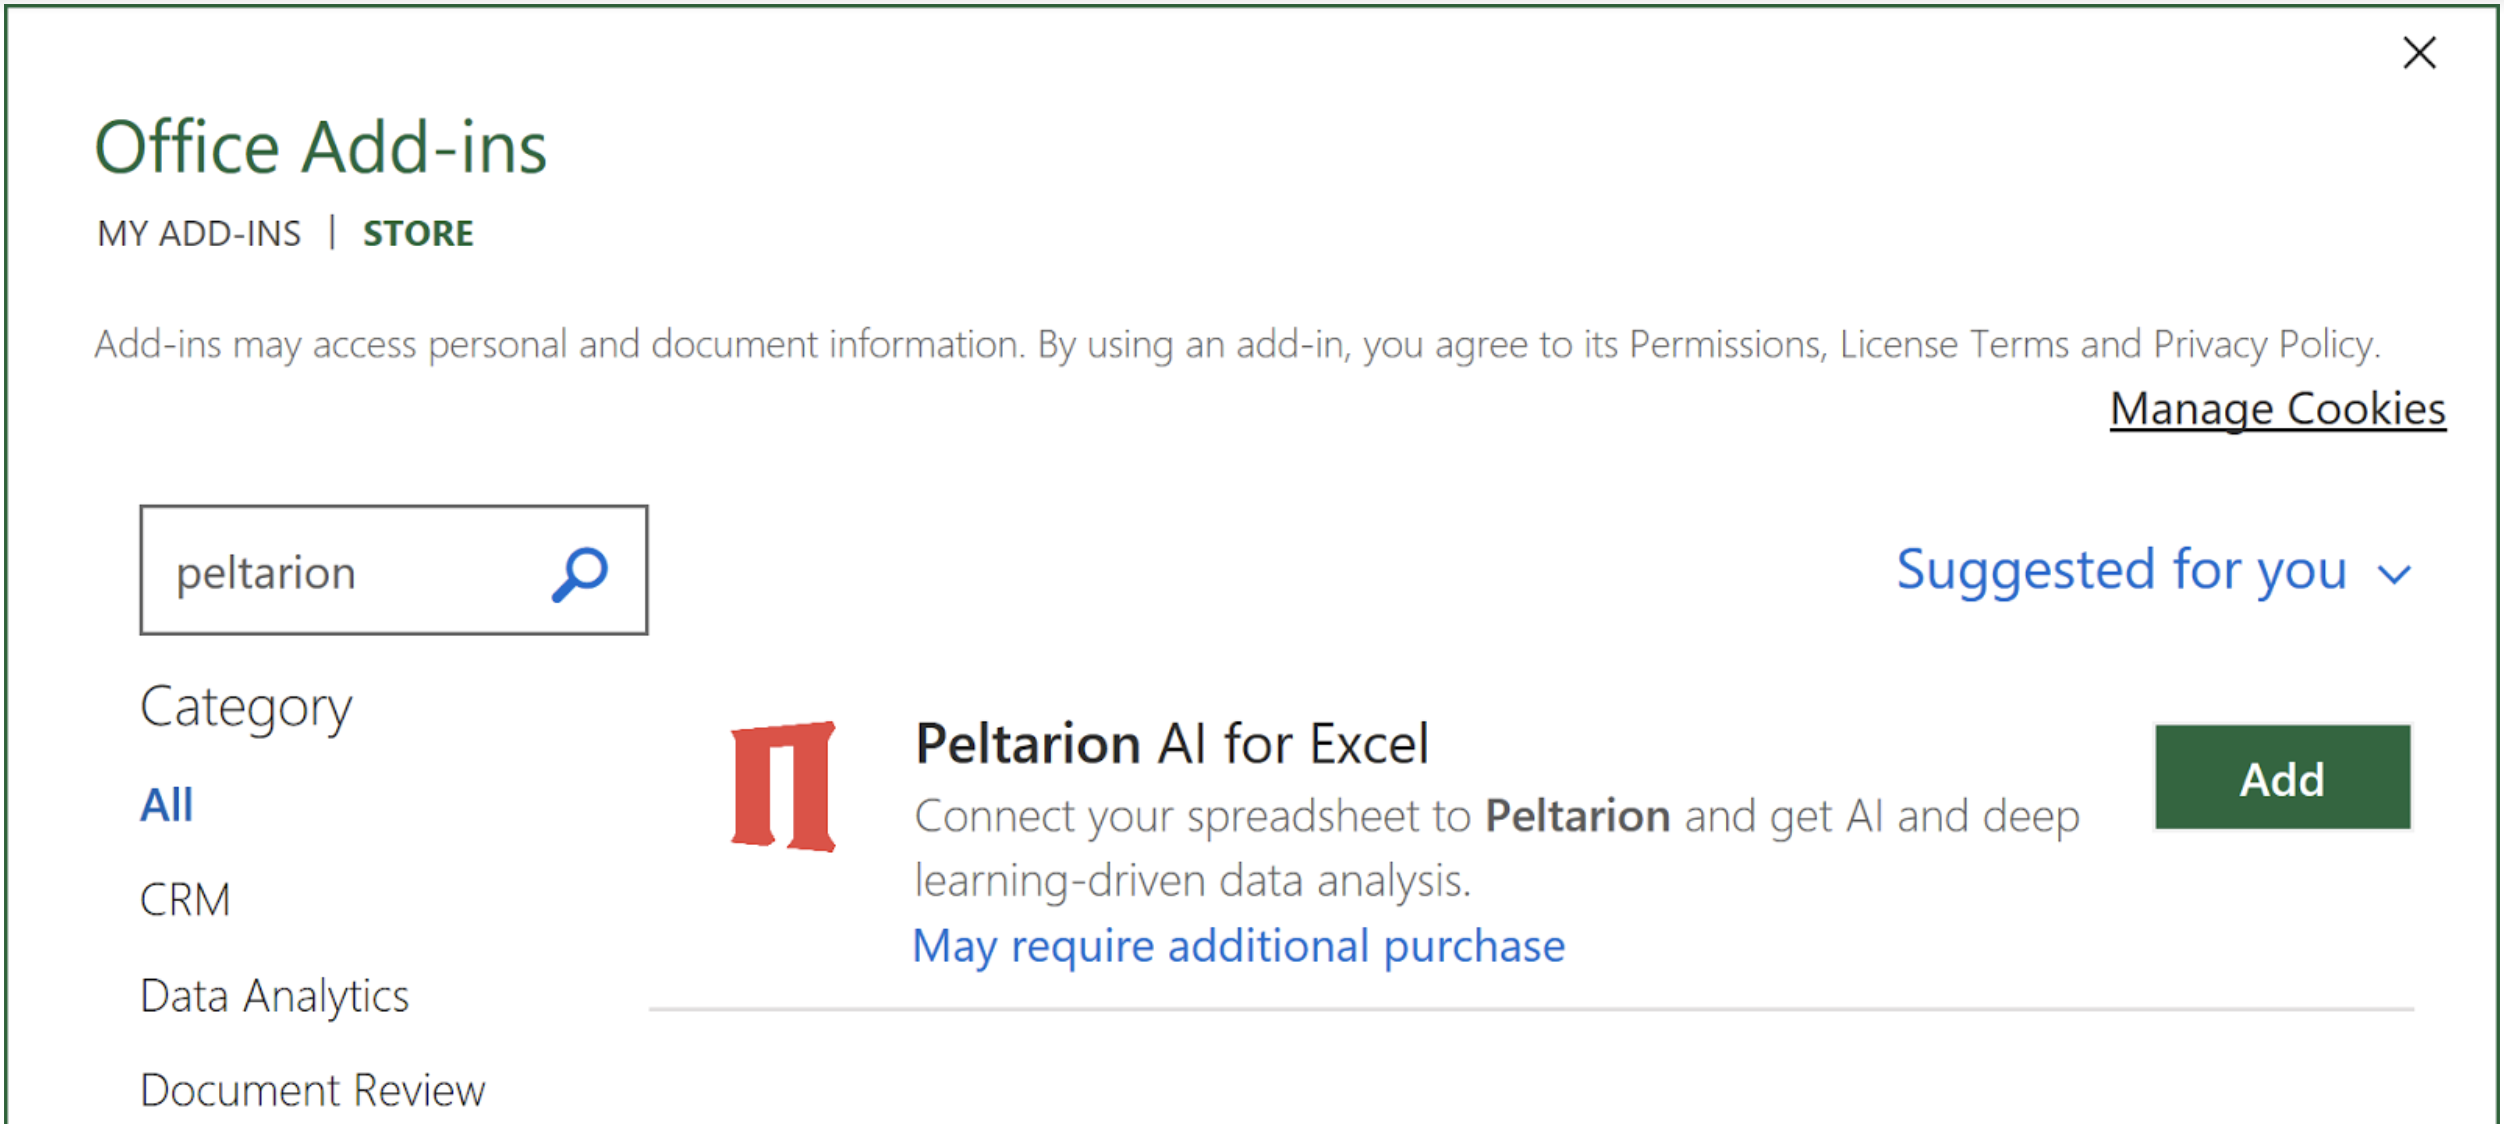 Install the Peltarion AI for Excel add-in